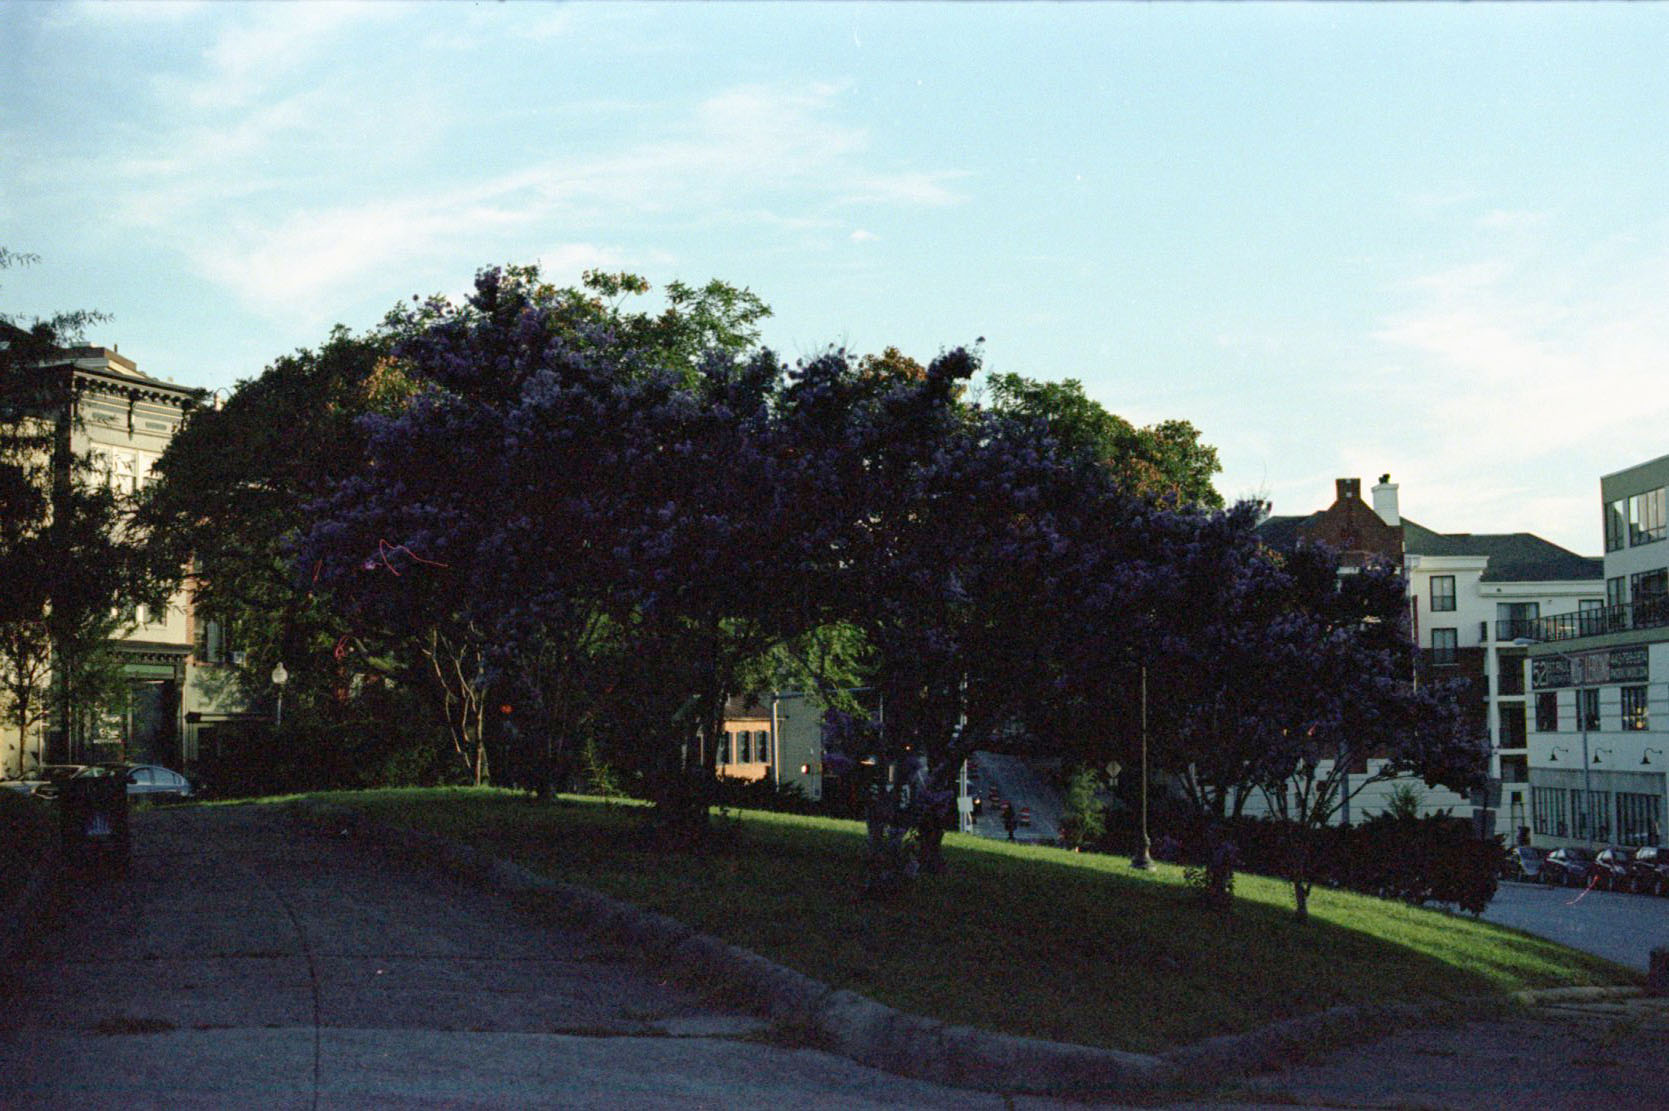 trees_at_stpaul_28486260173_o.jpg